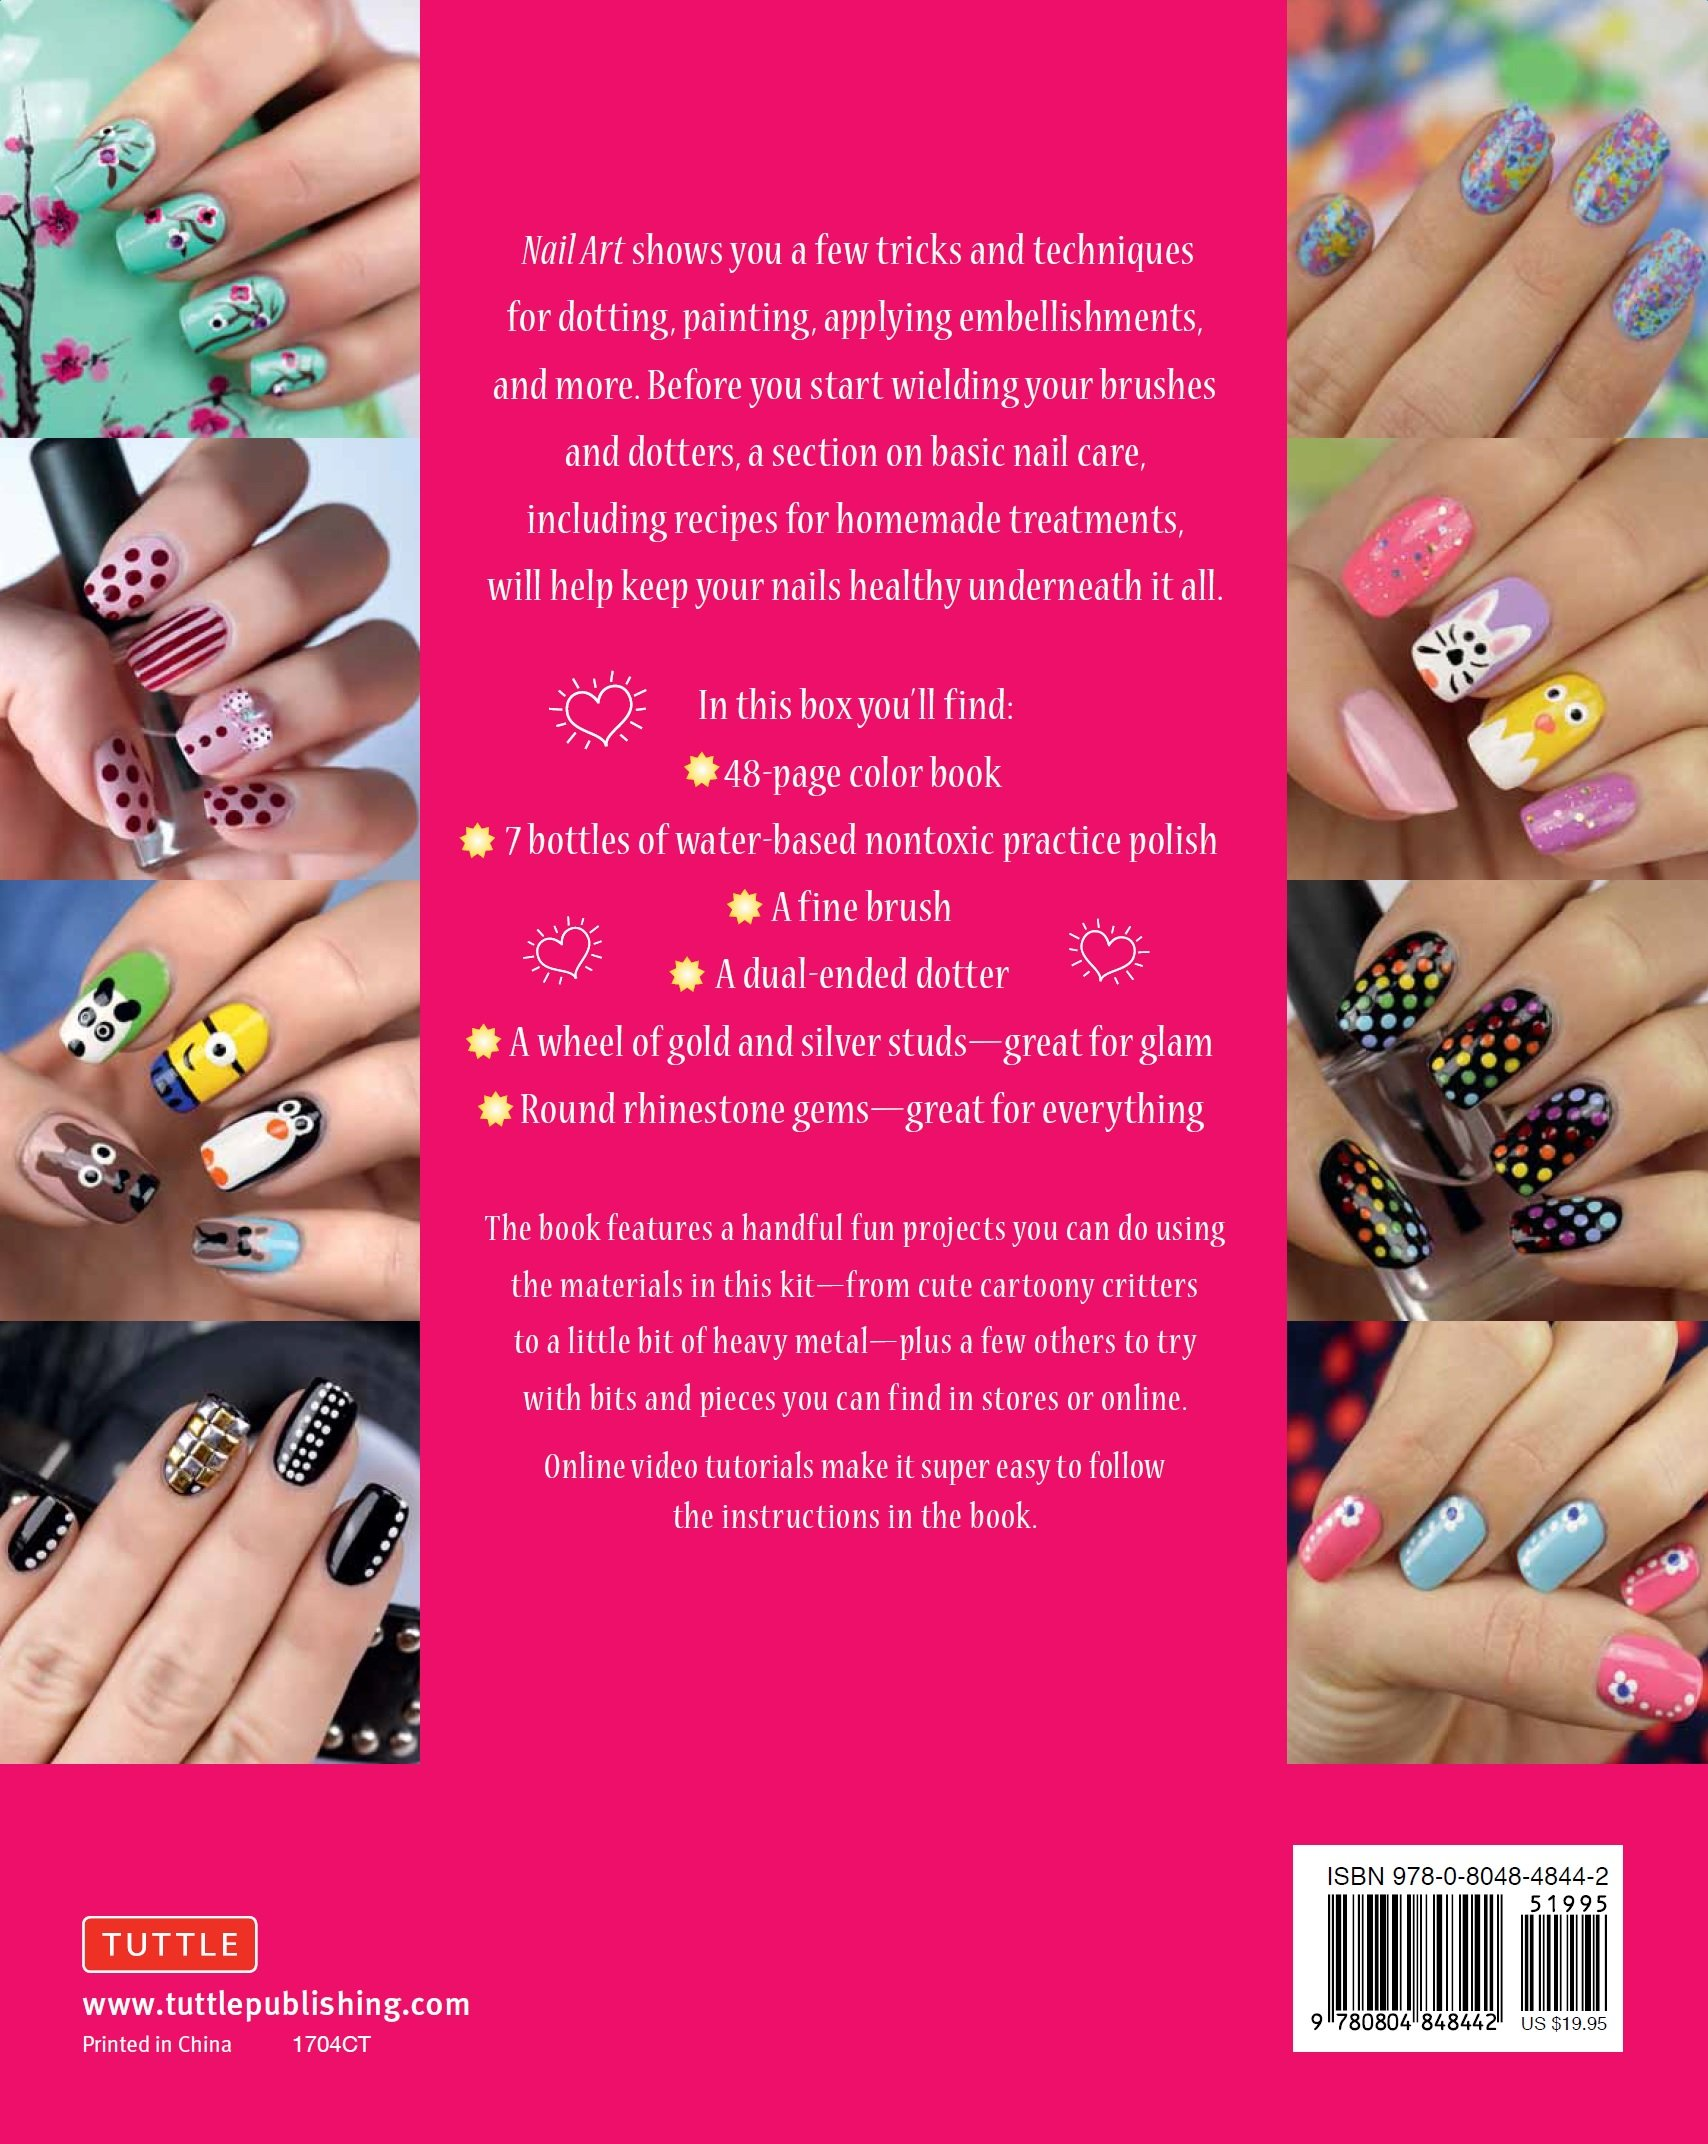 Nail Art Kit The Easy Way To Creative Nails LaLilliMakeup Stefano Manzoni 9780804848442 Amazon Books